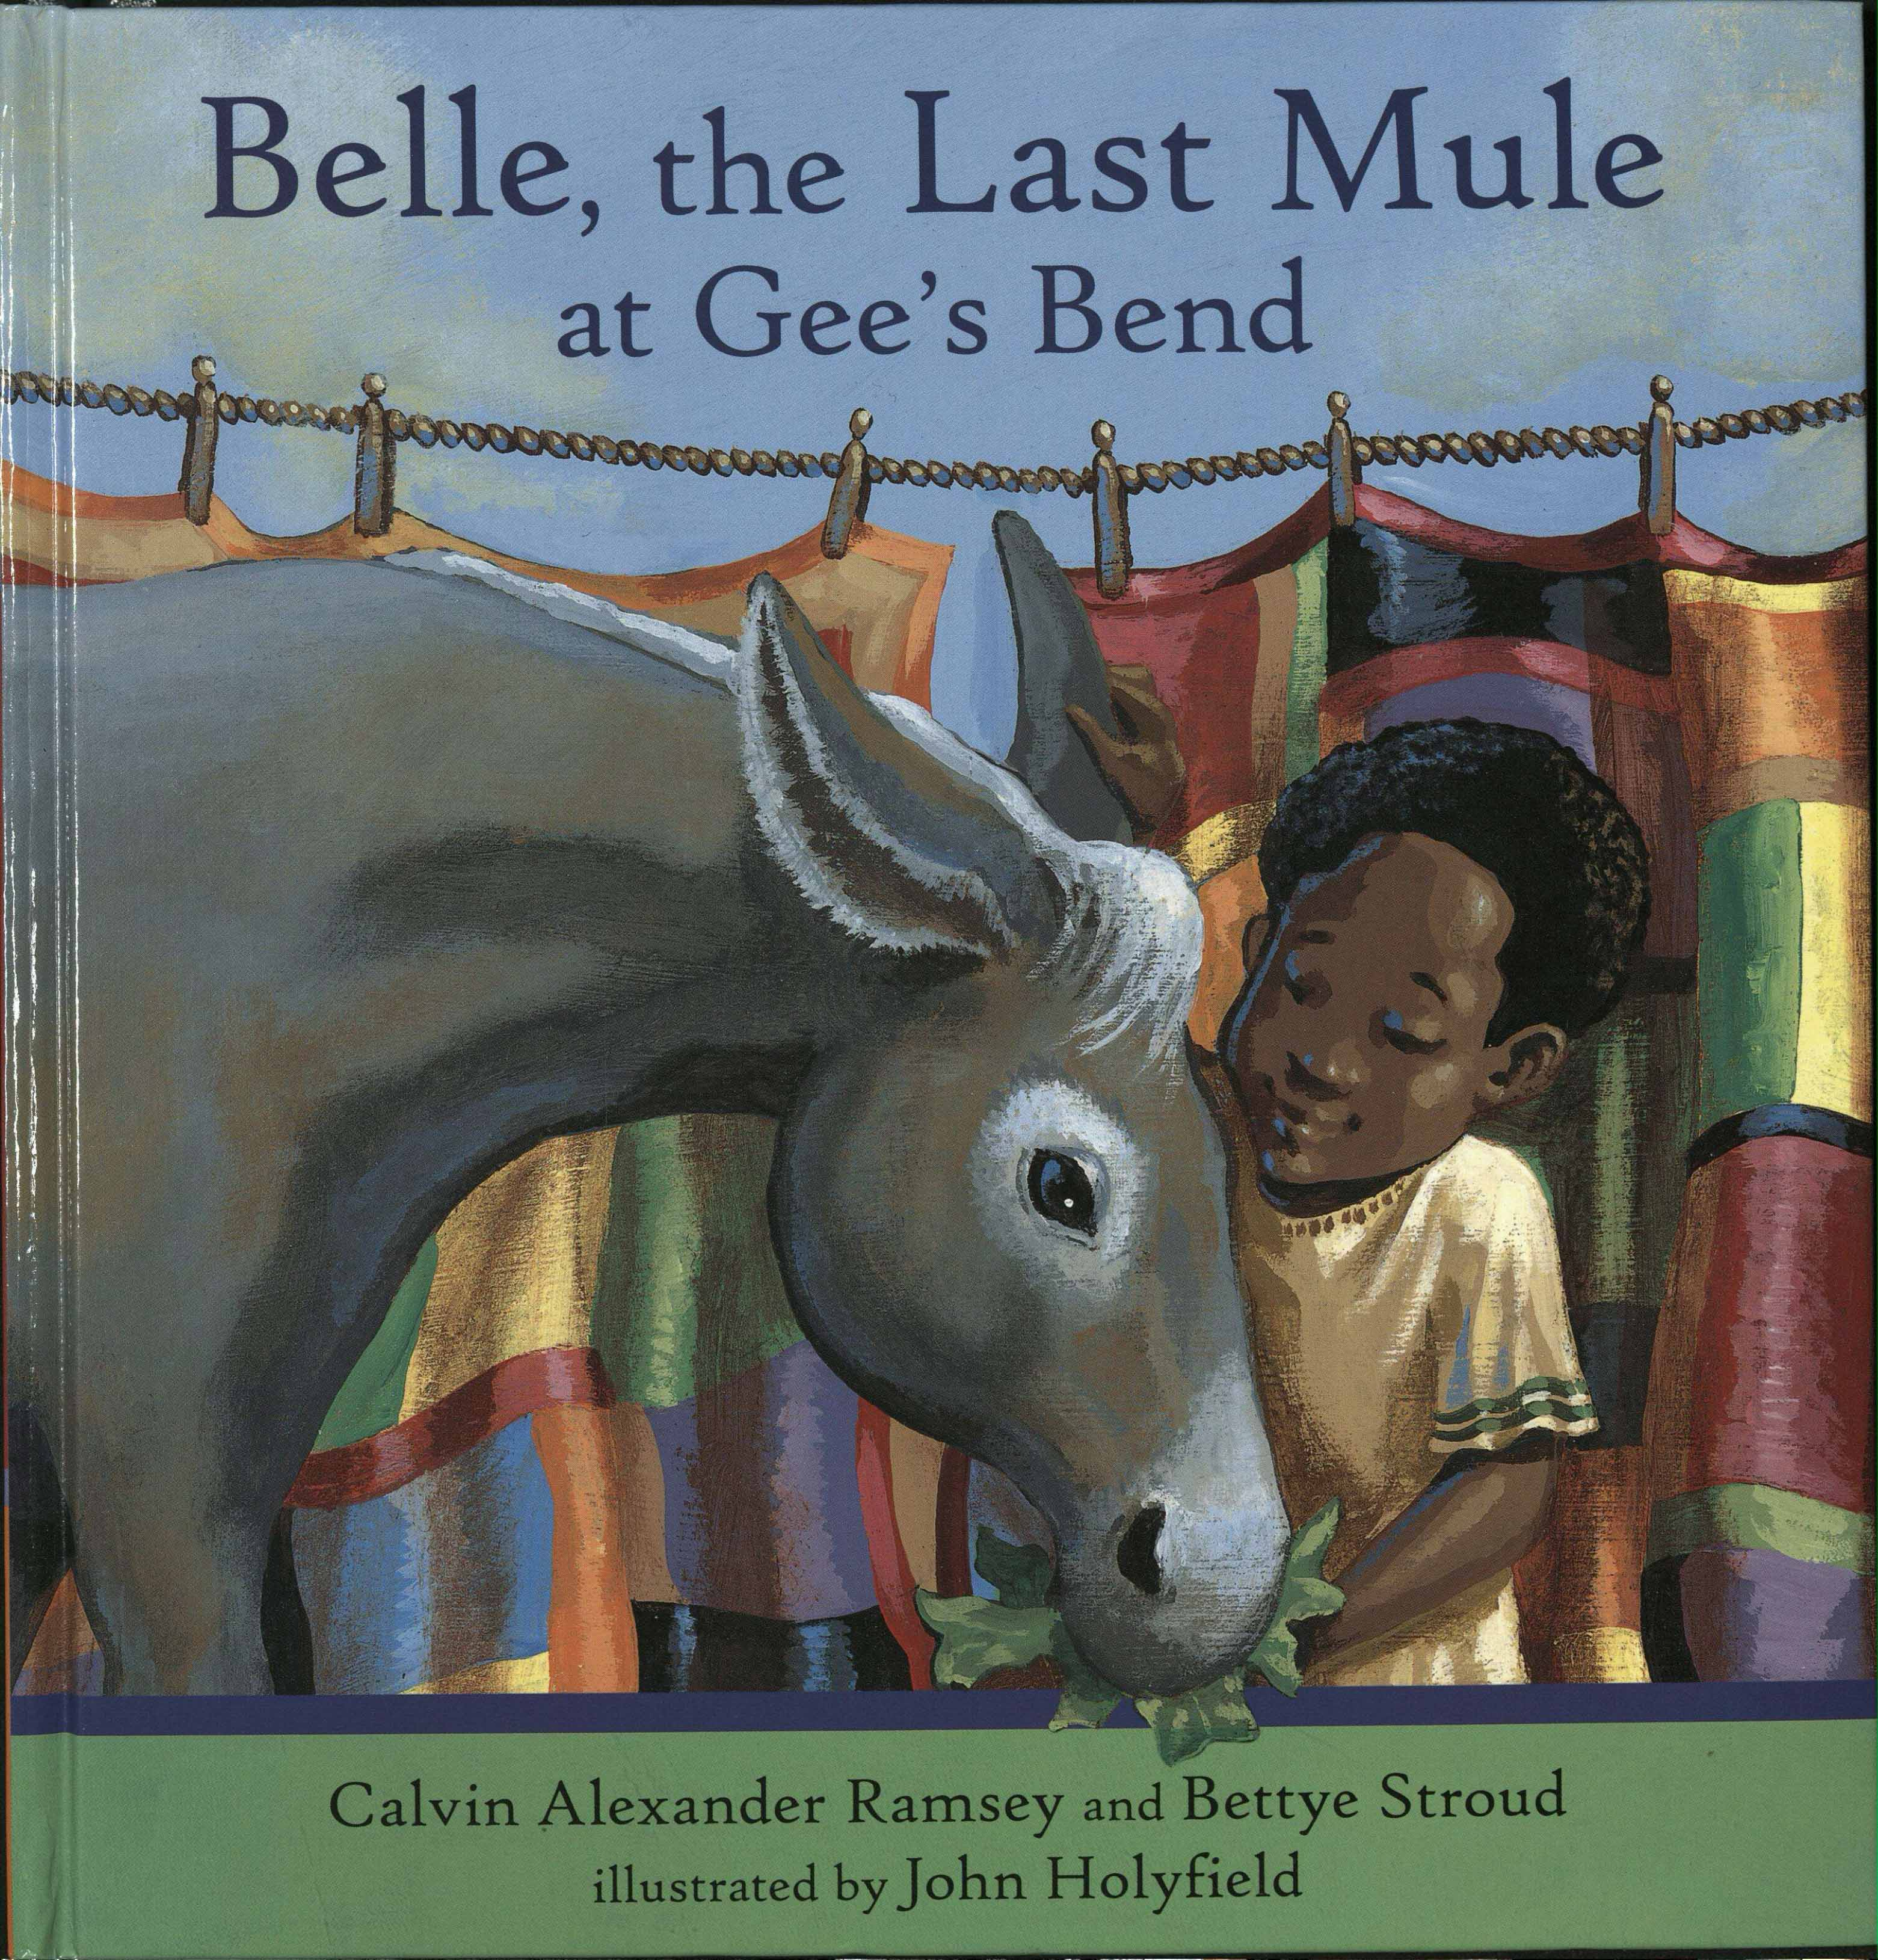 Cover of Belle, the Last Mule at Gee's Bend, by Calvin Alexander Ramsey and Bettye Stroud